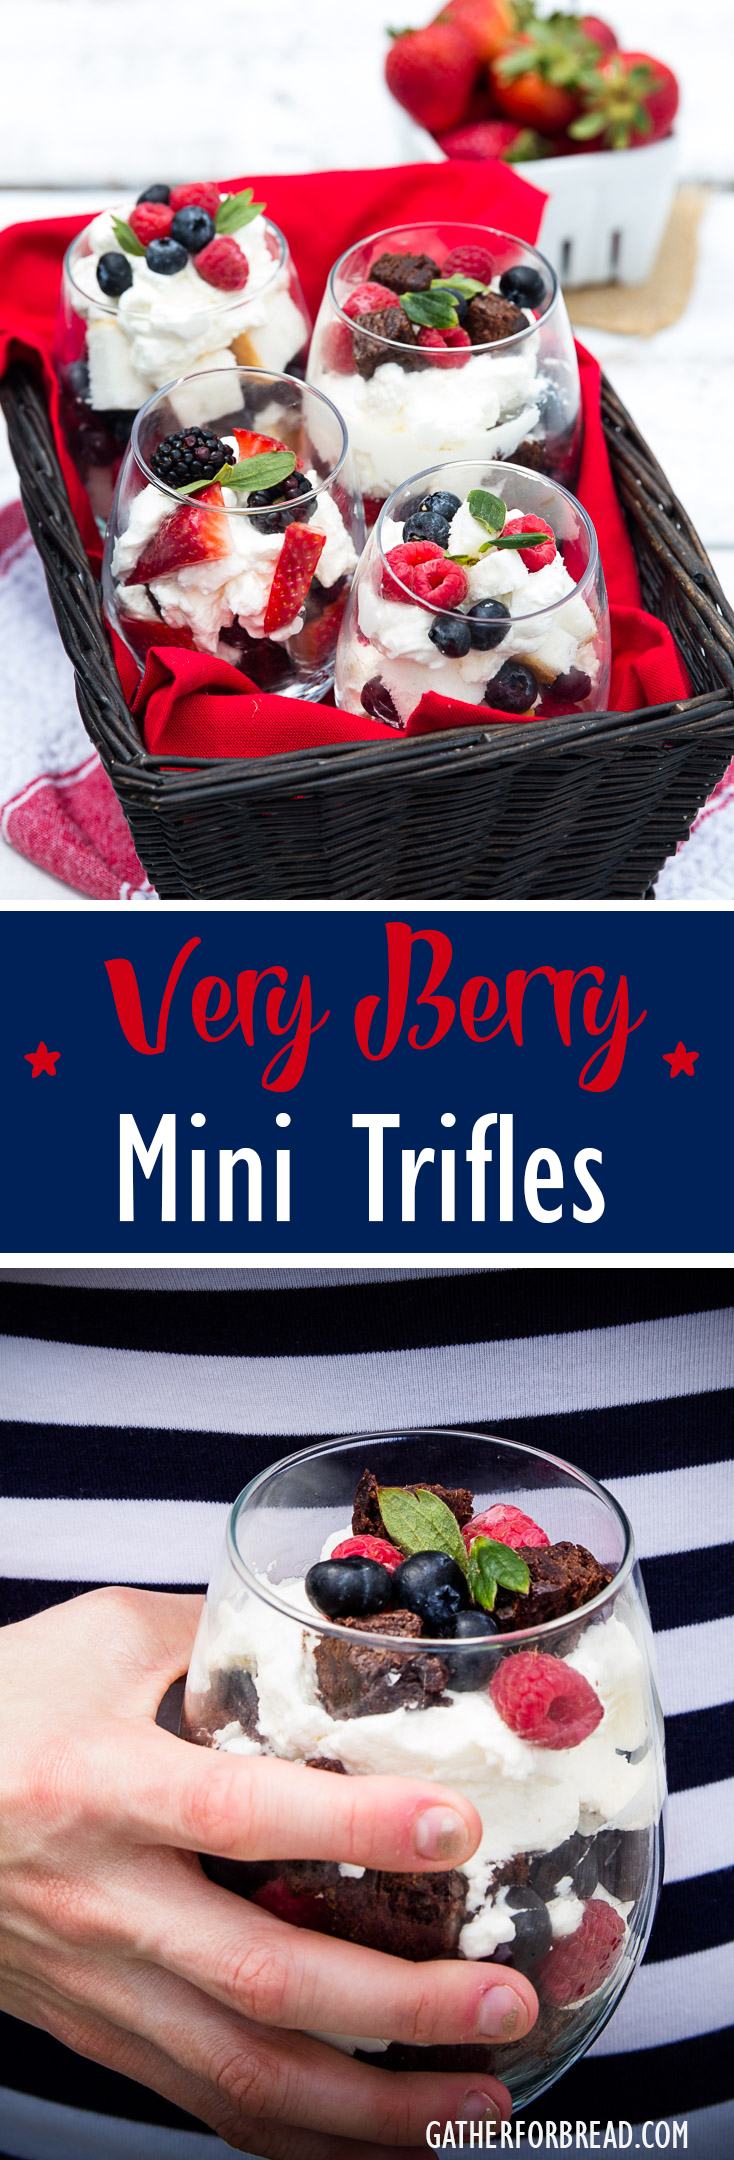 Very Berry Mini Trifles -Mini berry trifles made with angel food cake and brownies. Sweetened with home made whipped cream and assorted fresh berries. | gatherforbread.com